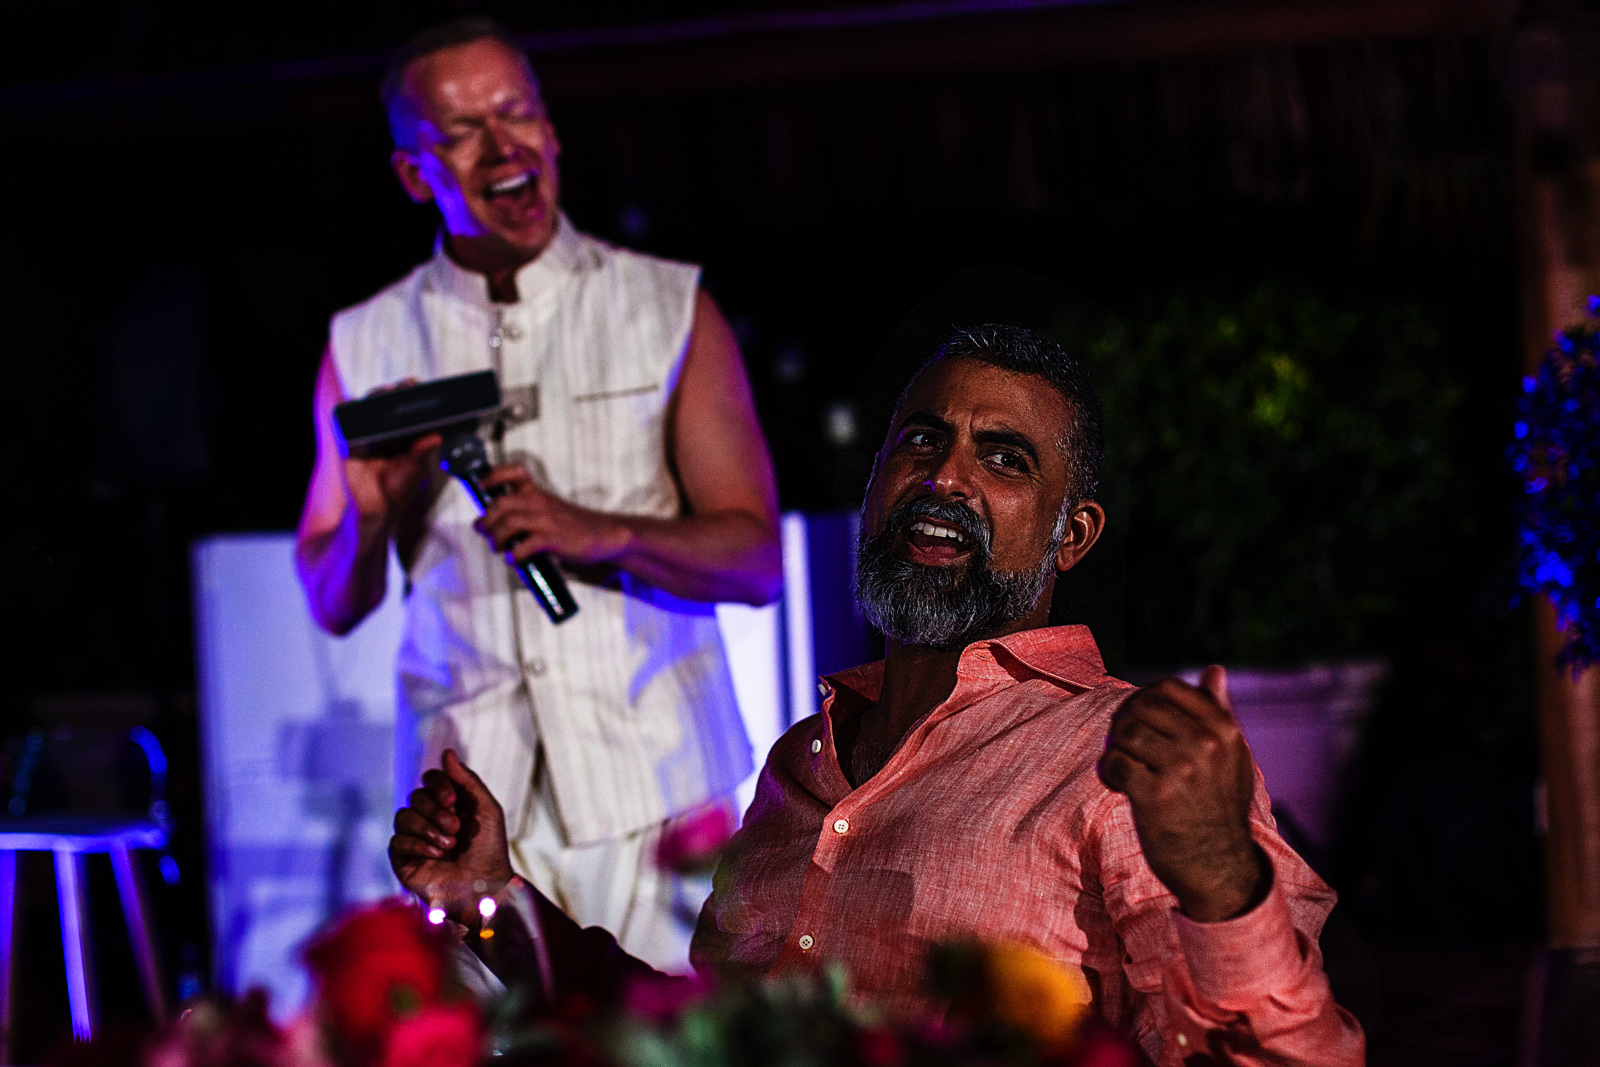 Best man holds a boombox against the microphone on his speech, the groom reacts singing